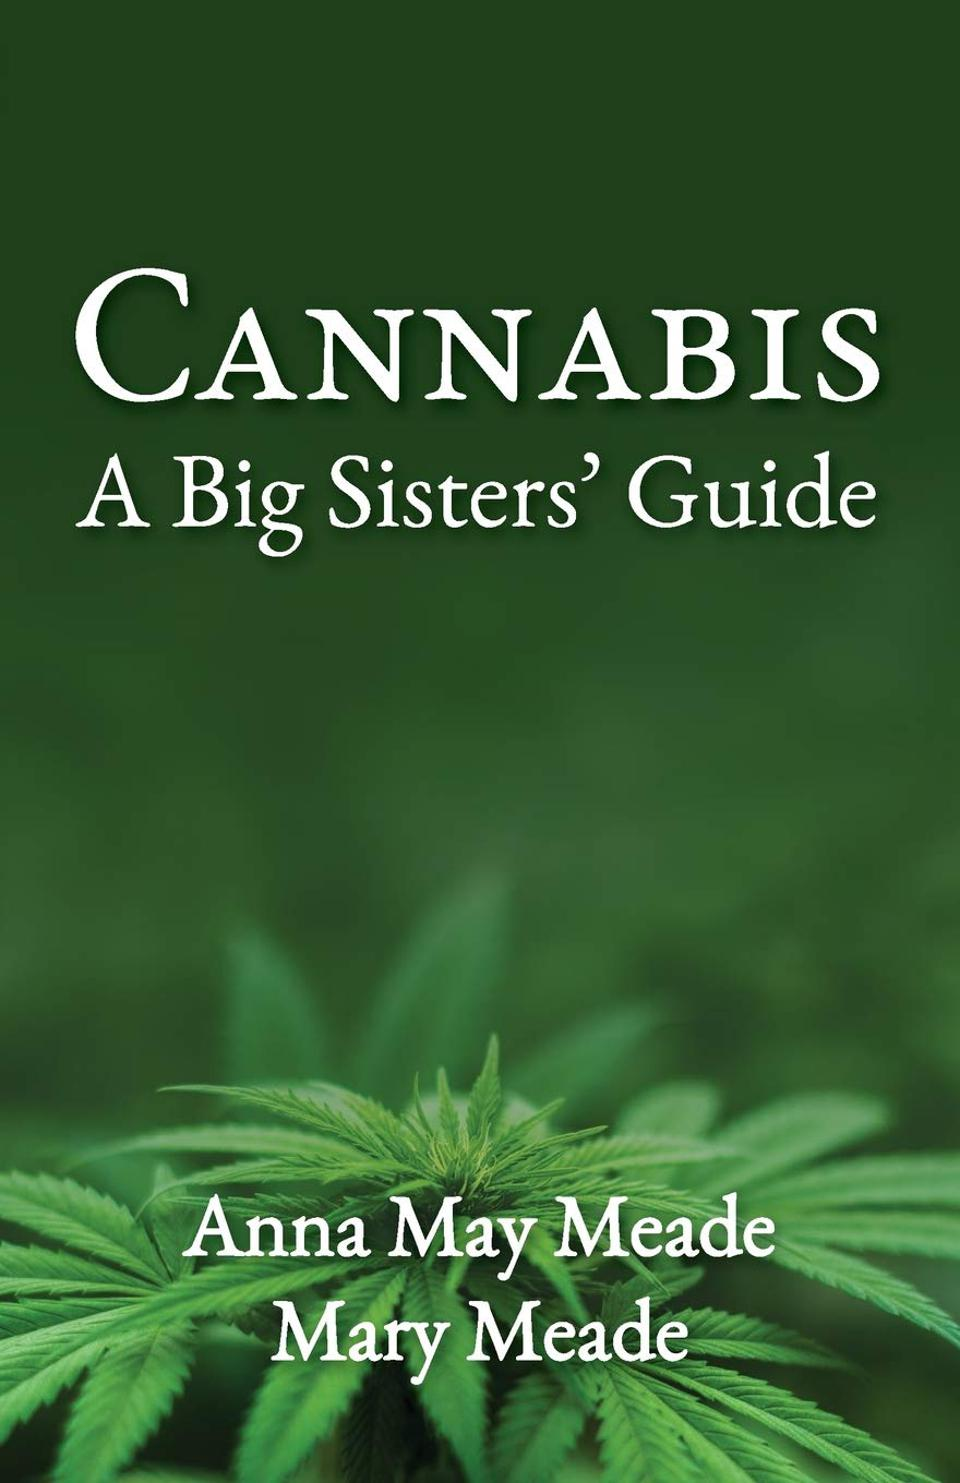 Cannabis A Big Sisters' Guide